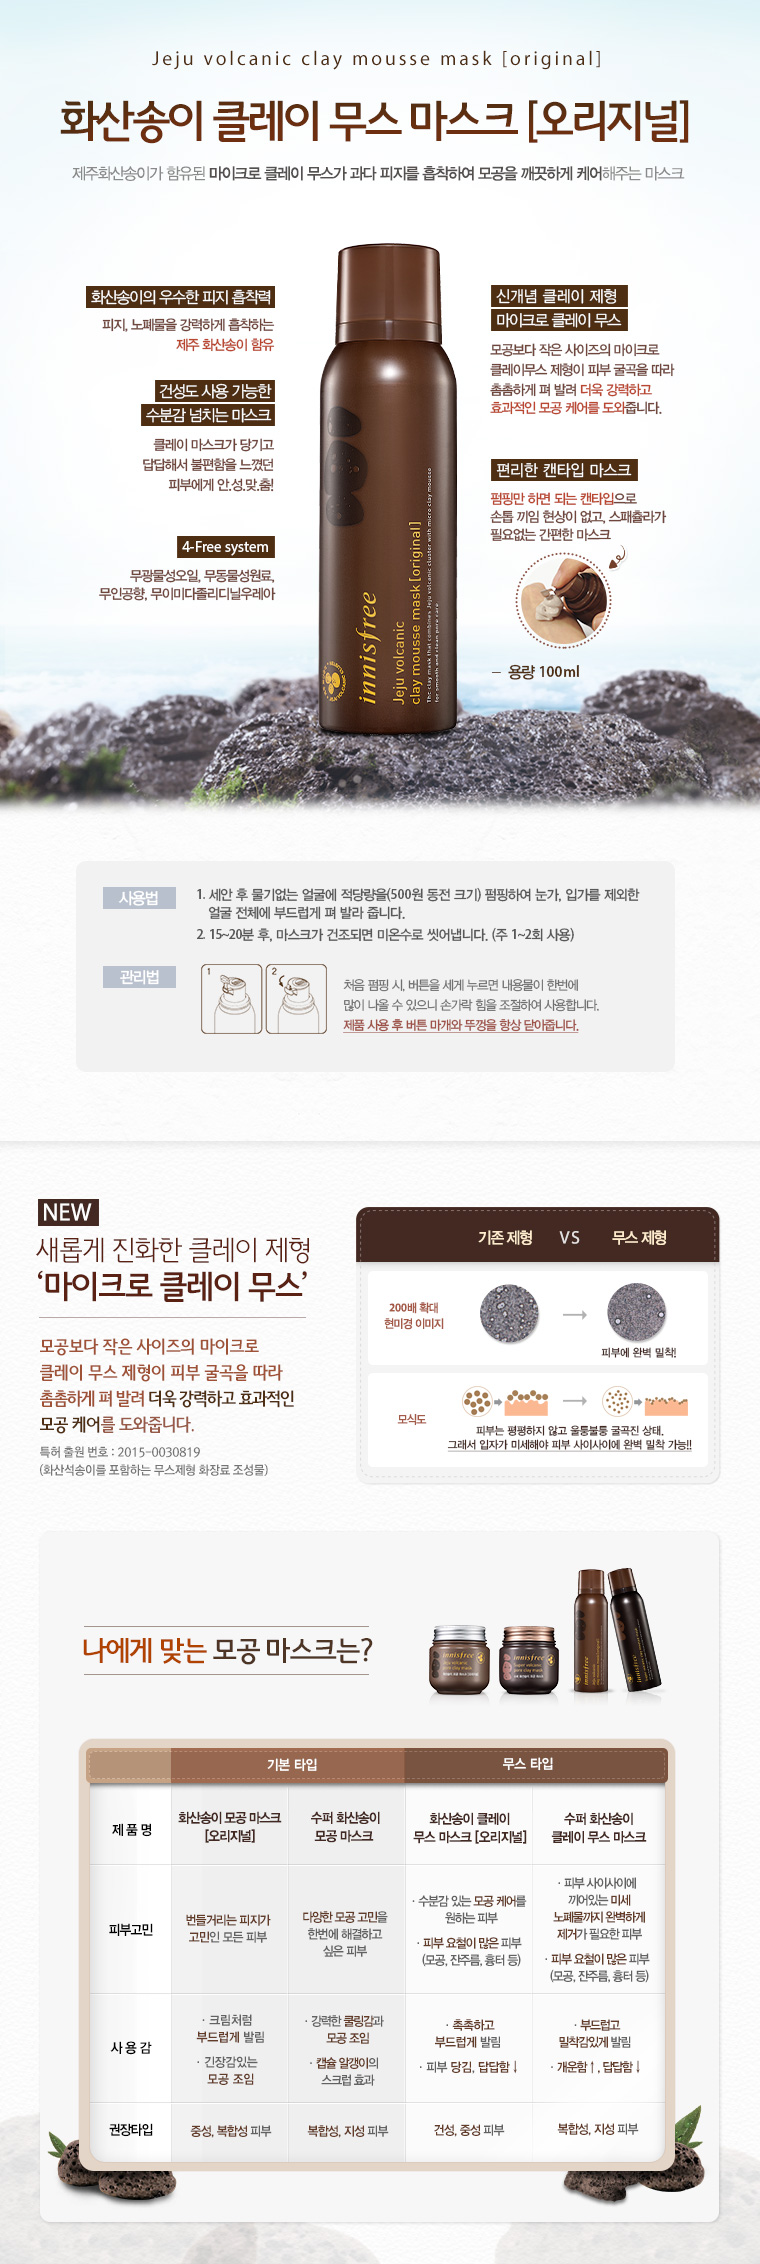 innisfree clay mousse mask instructions